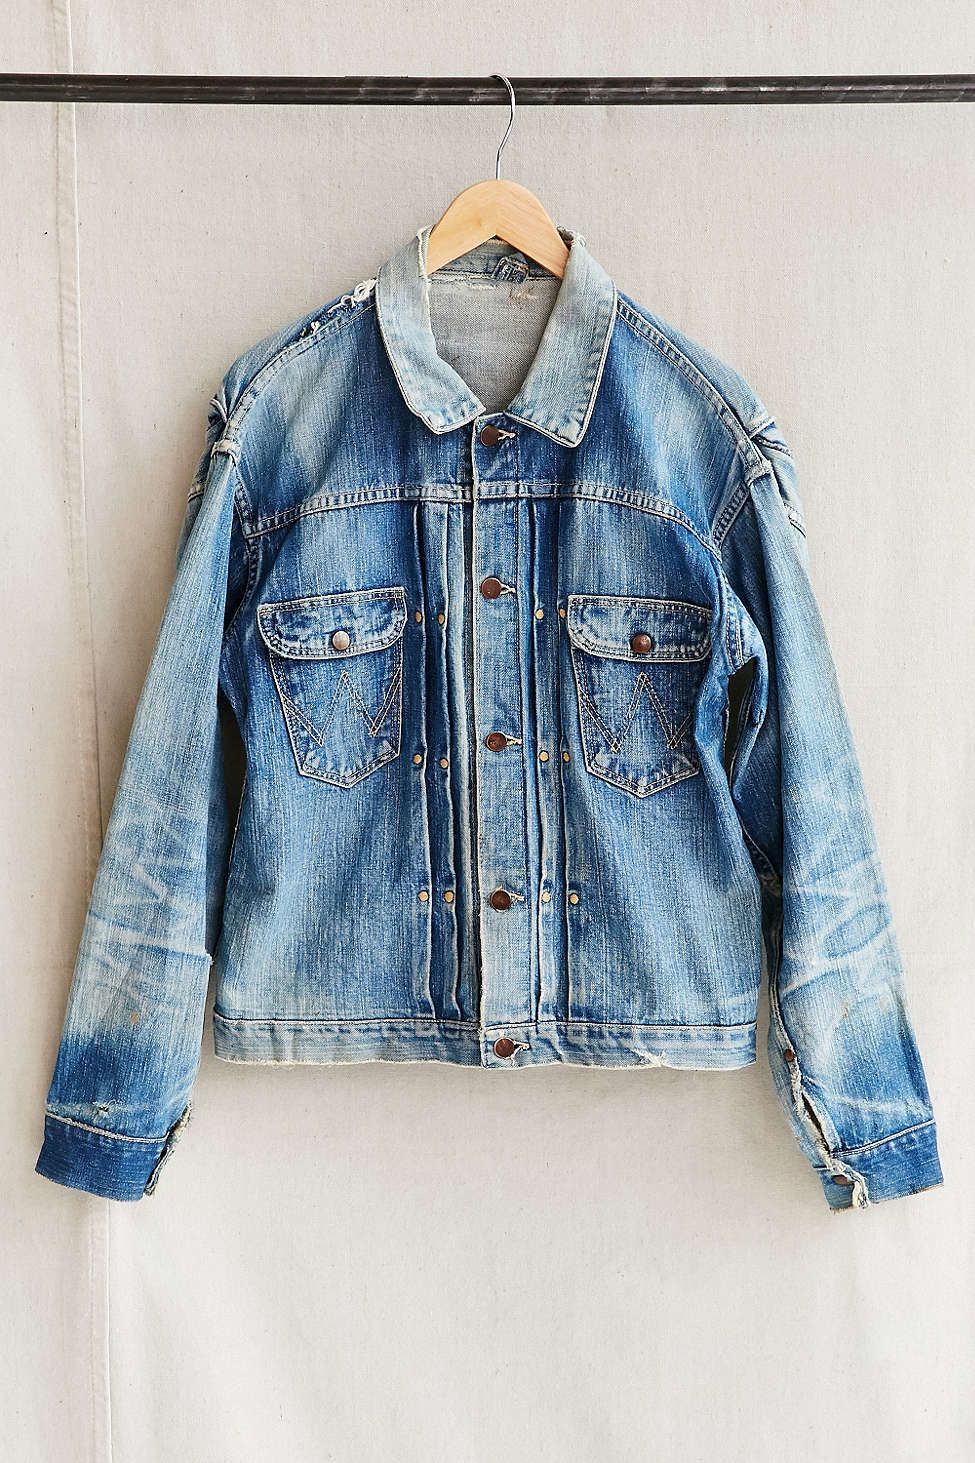 a1aca830115c7 Vintage Wrangler Jean Jacket - Urban Outfitters